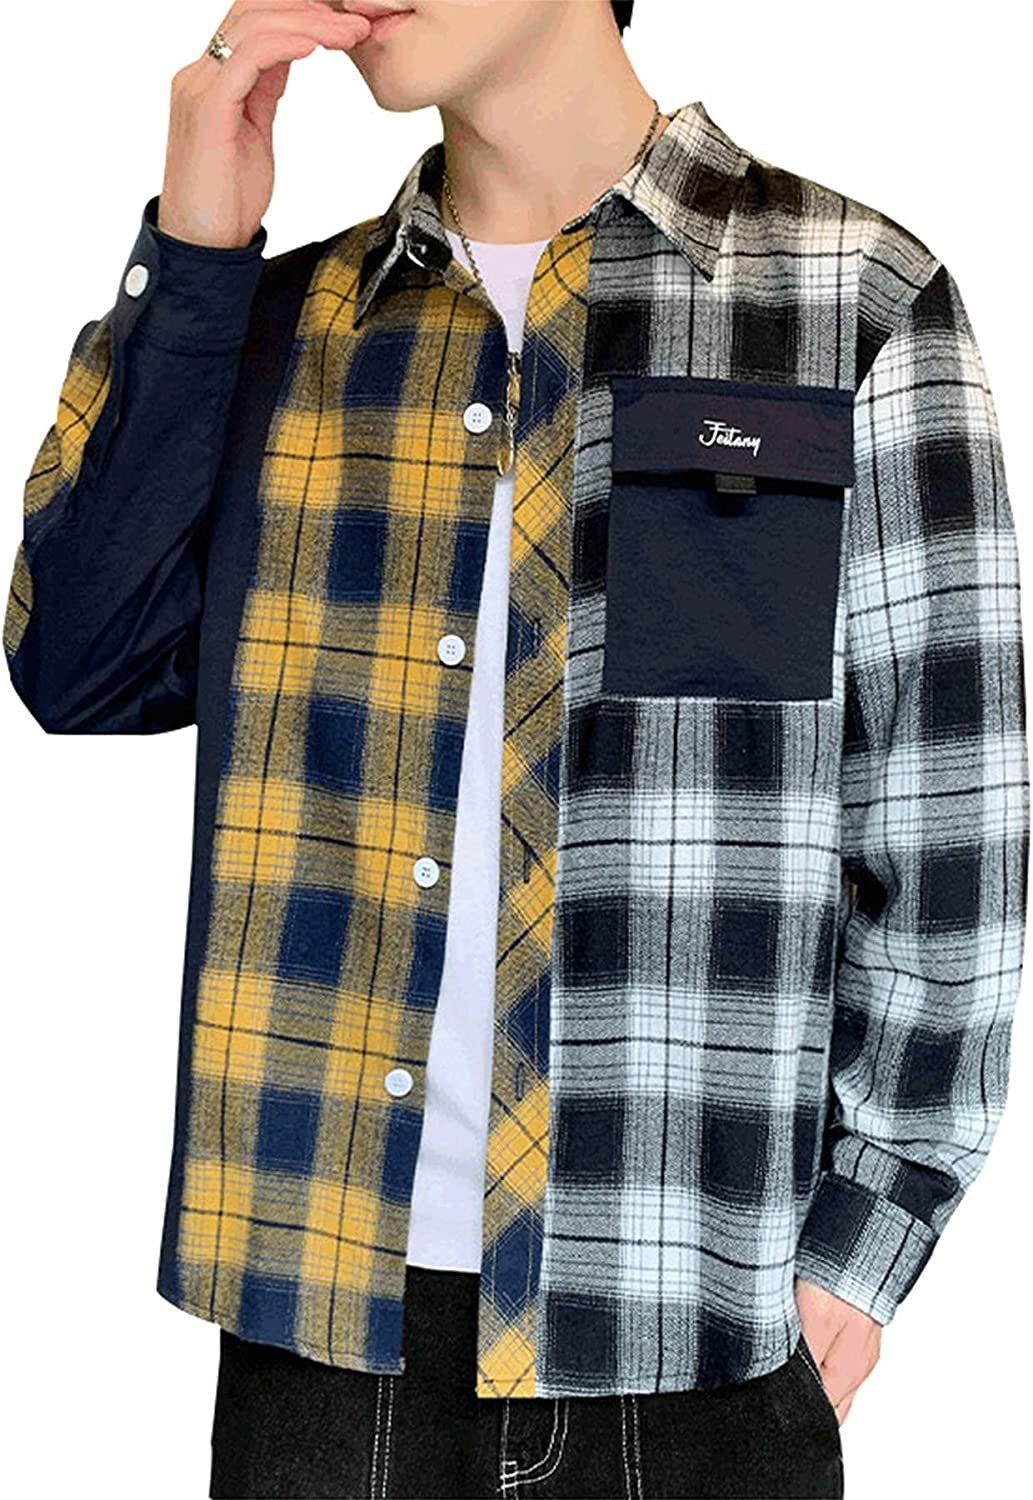 Men's Classic Lattice Shirt Long-Sleeved Fashion Color Matching Plaid Loose Fit Shirt Full Button Down with Pocket